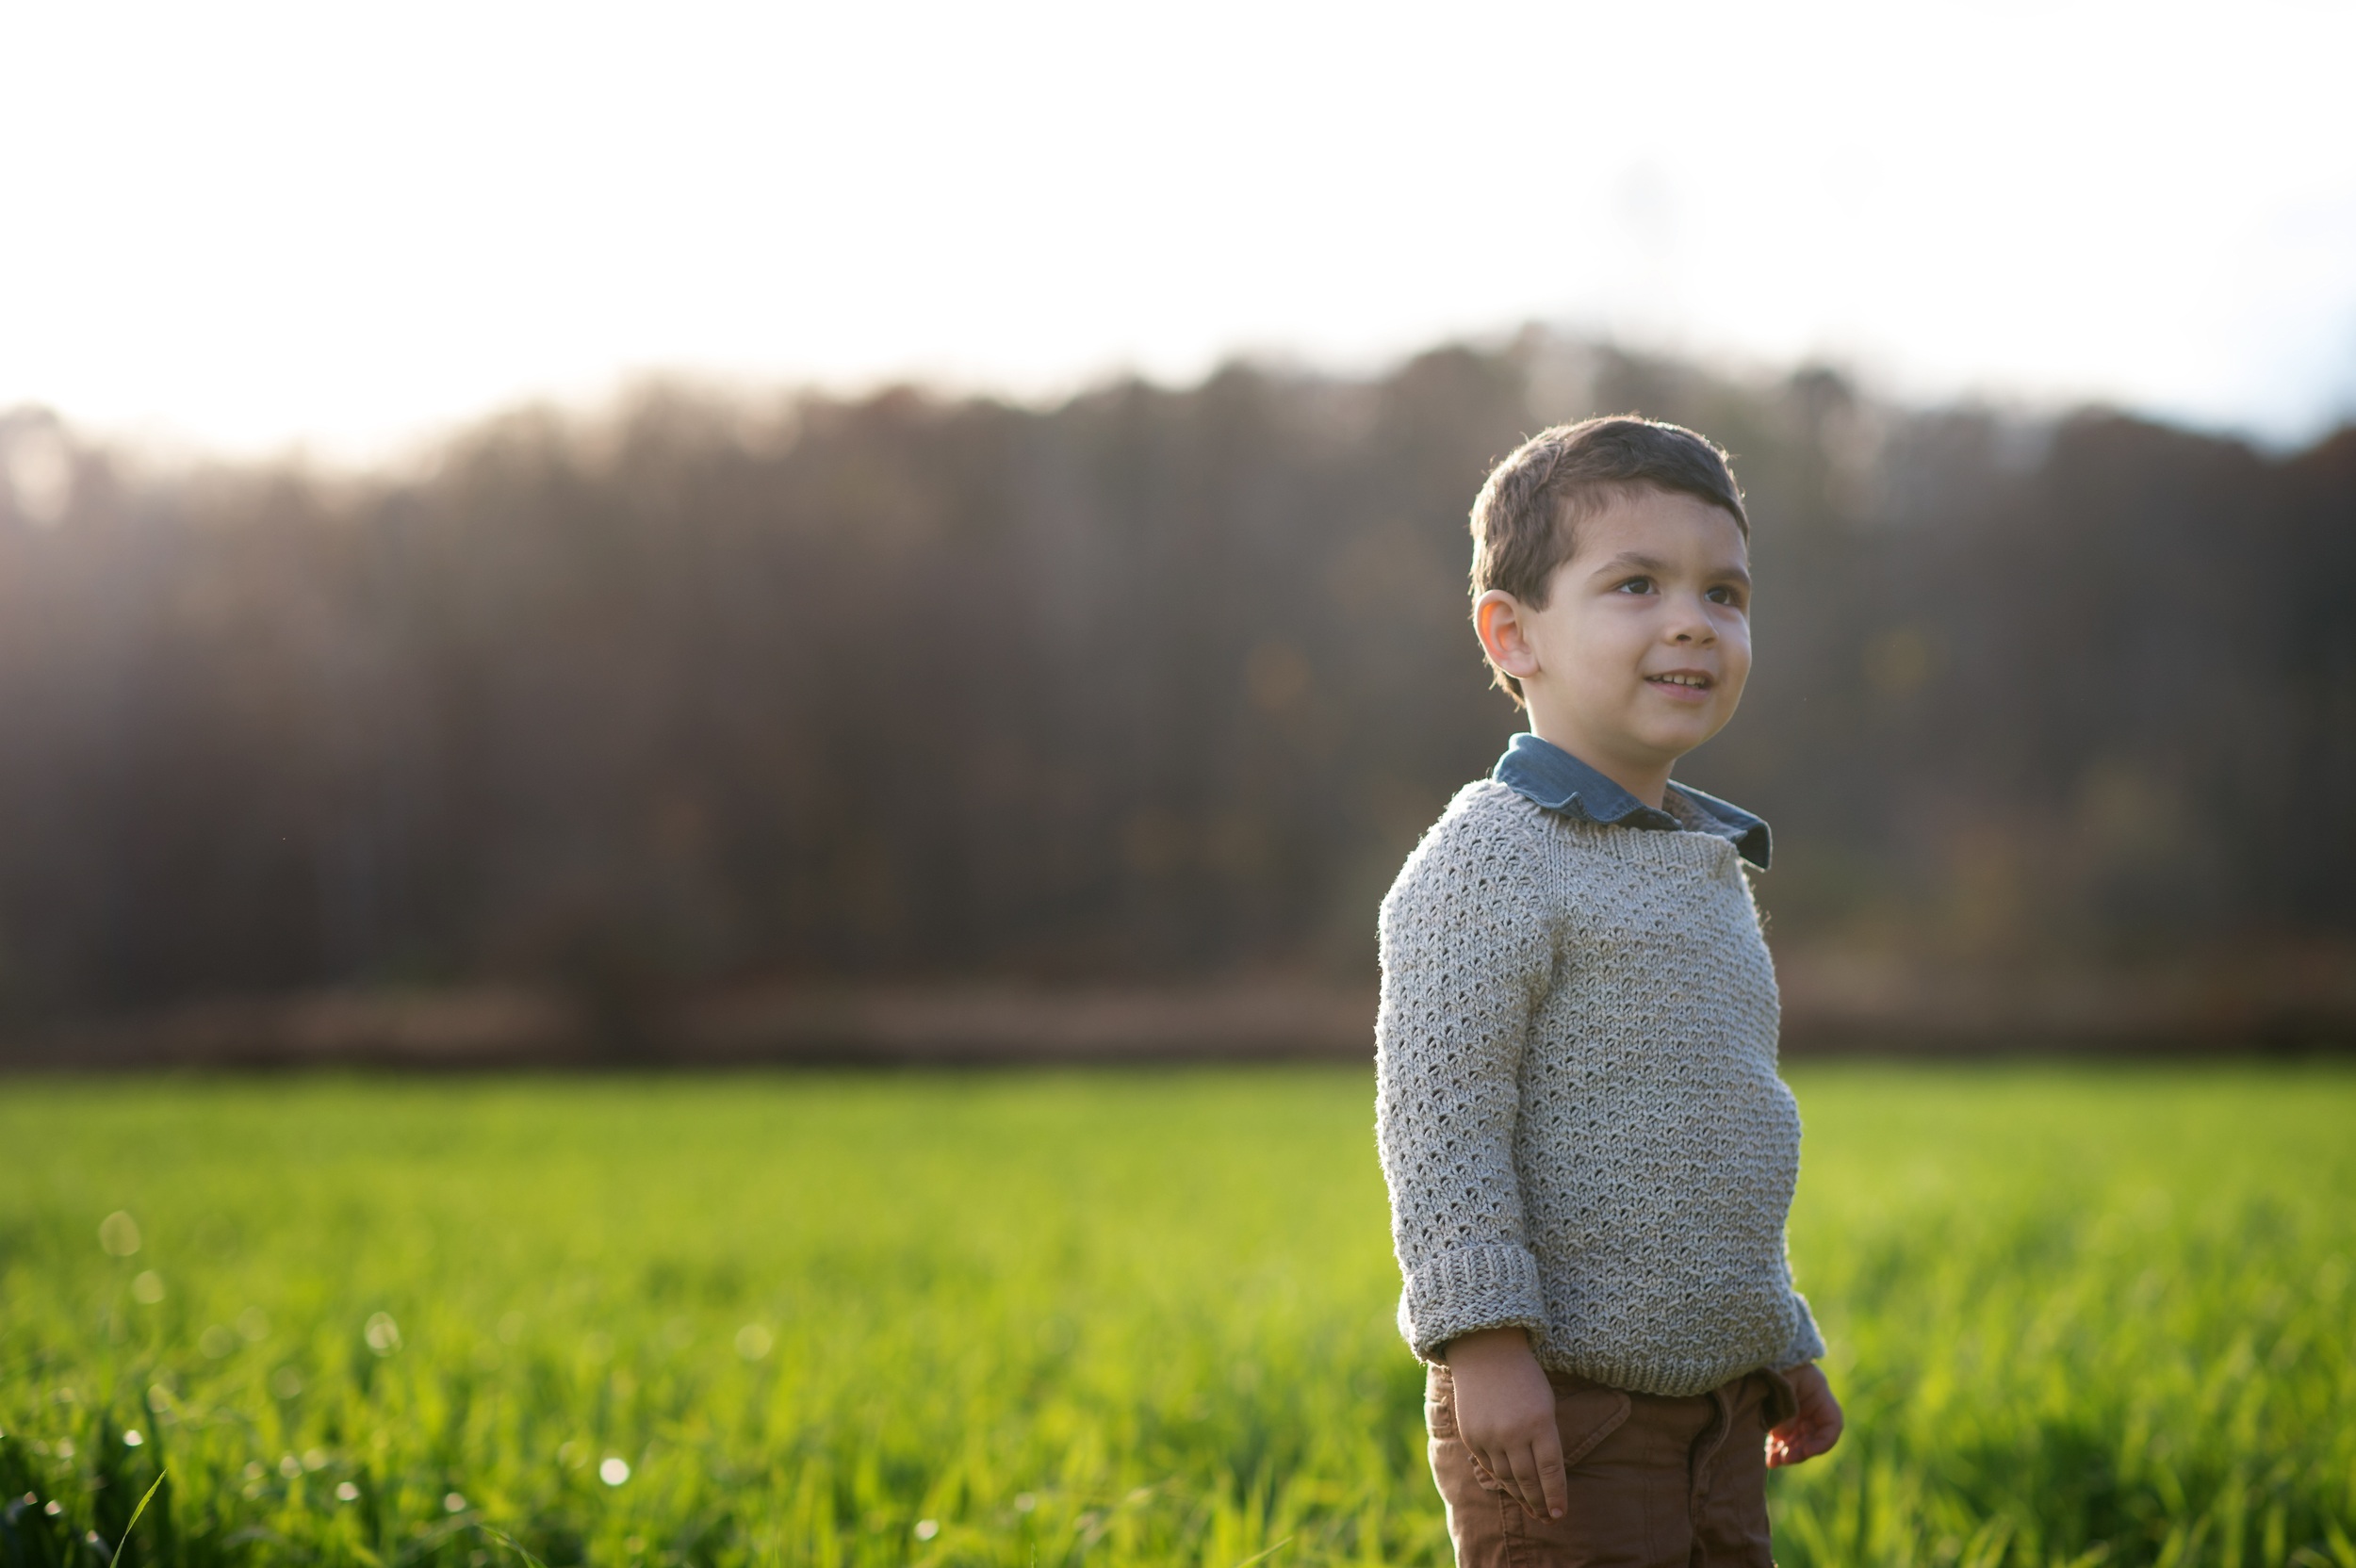 And... one from our family photo session. Apparently this is what Ohio in November looks like.